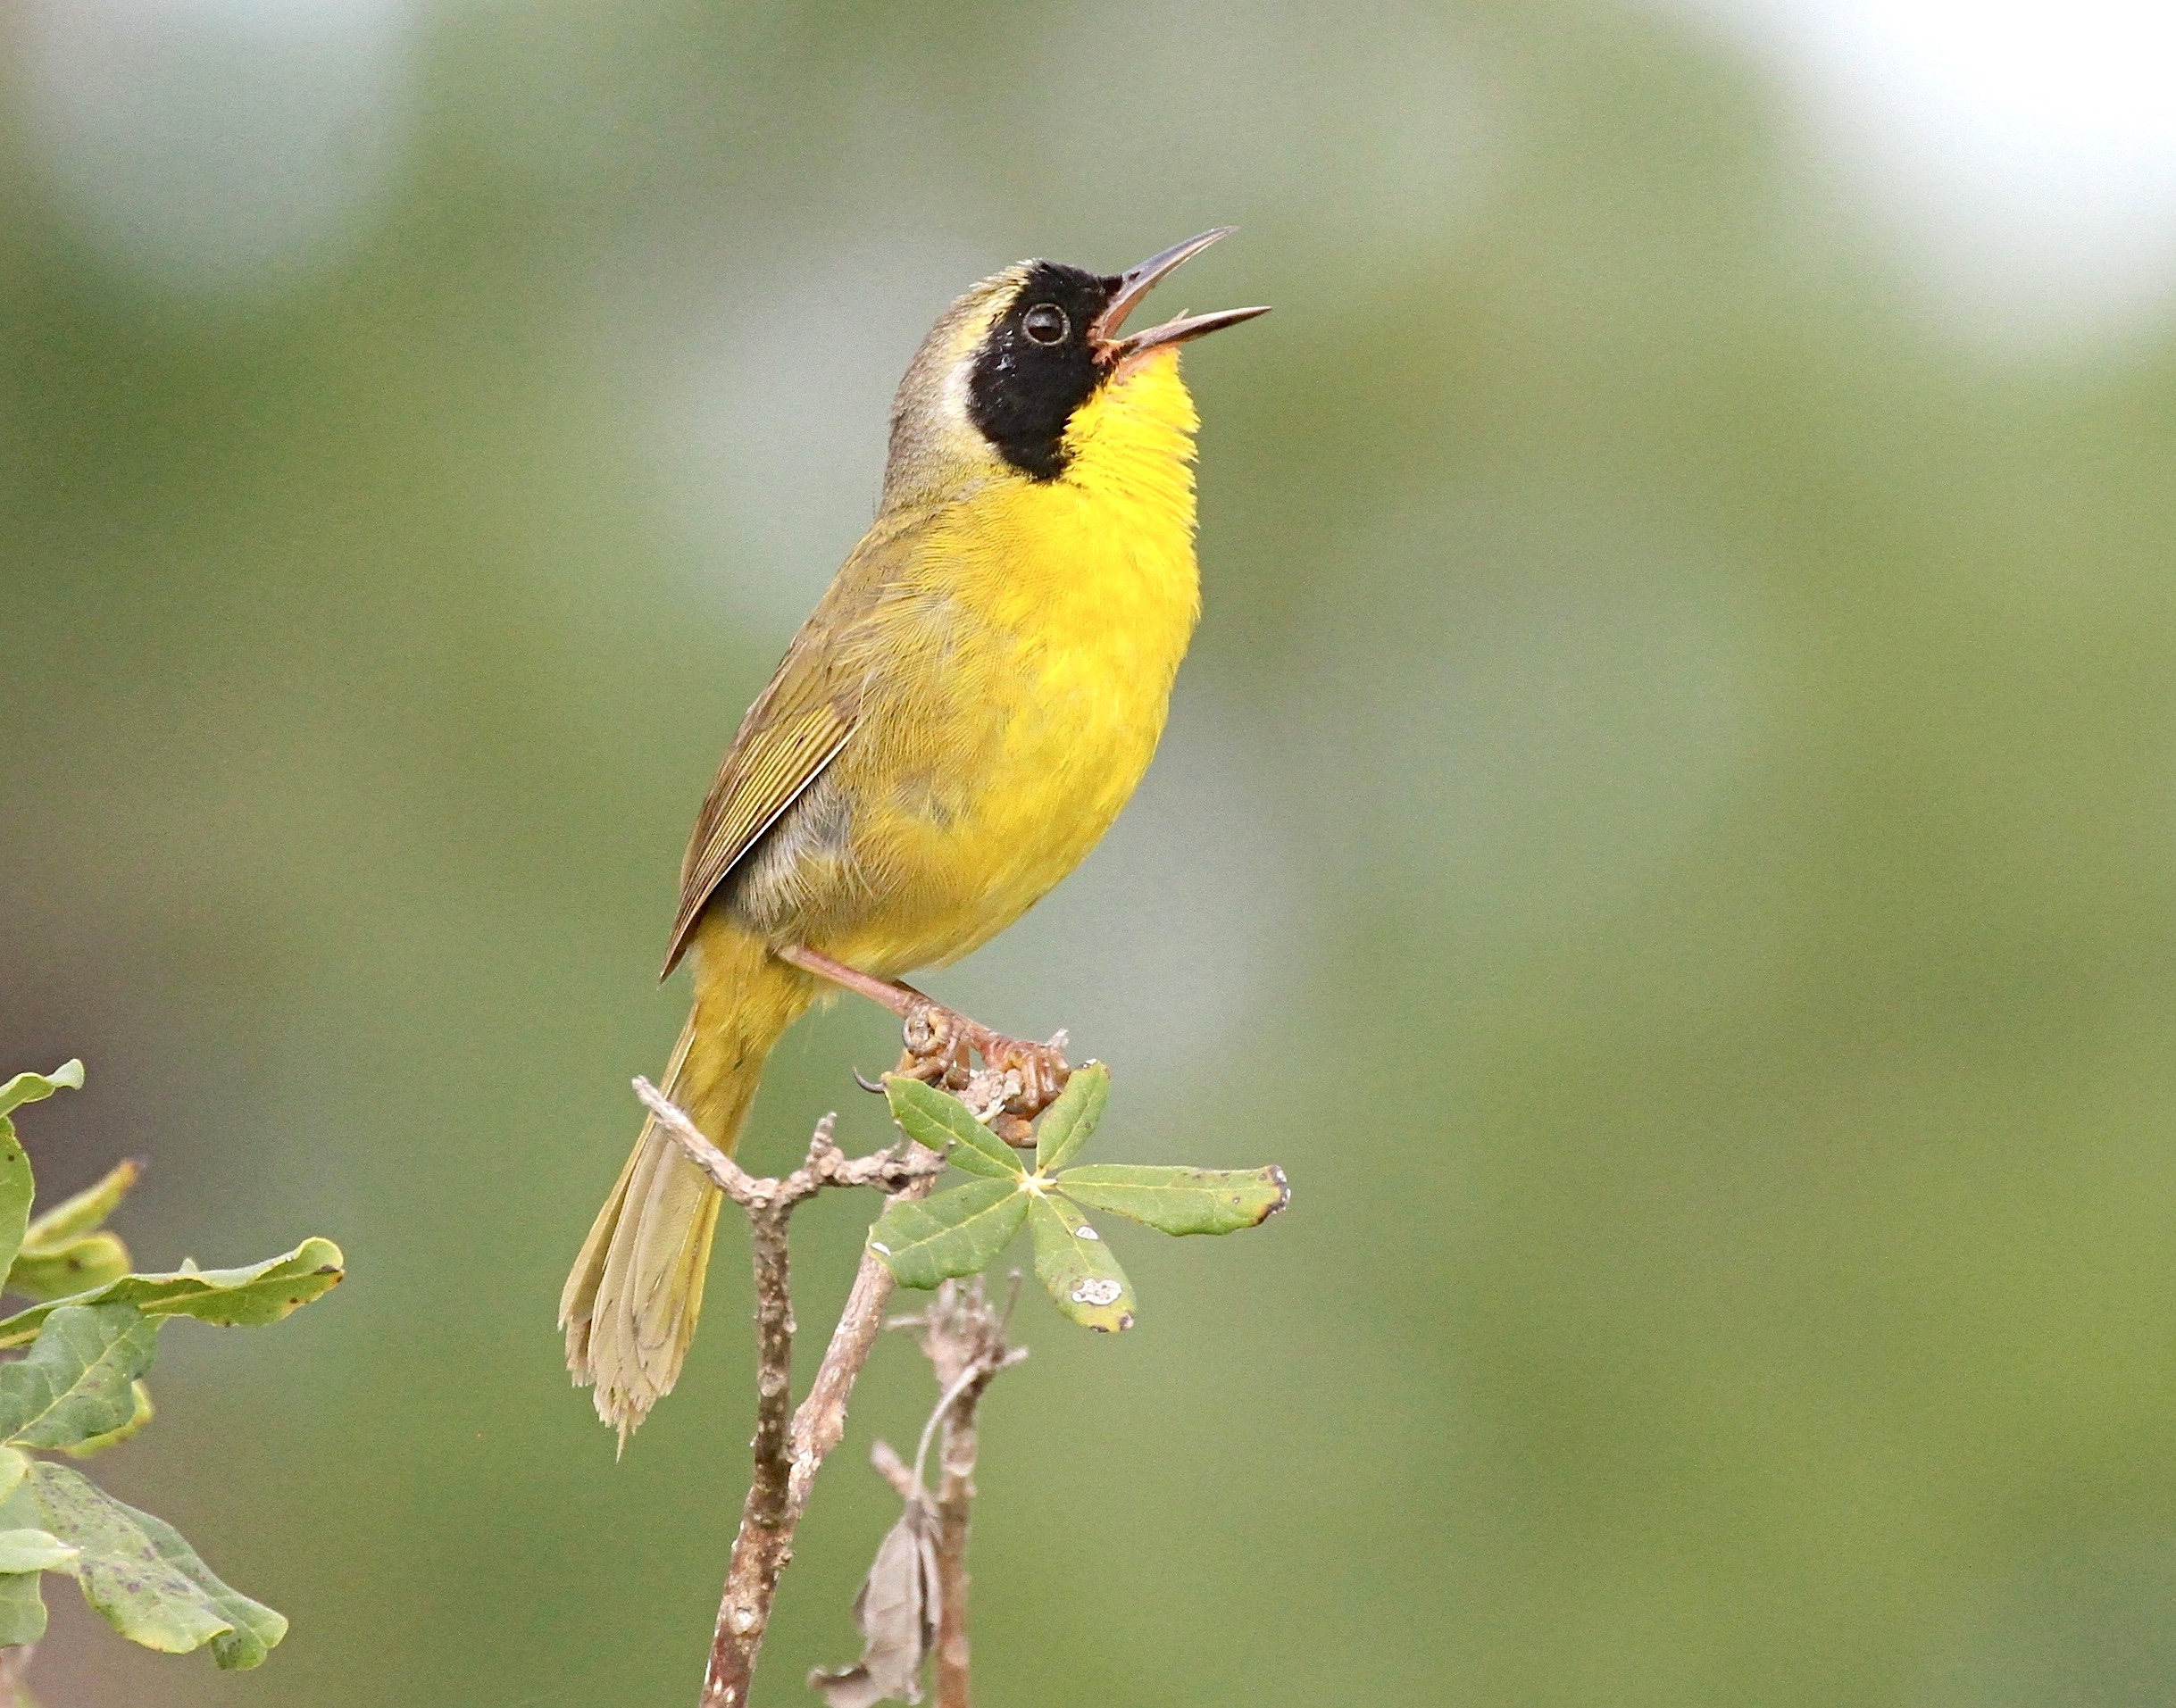 Bahama Yellowthroat, Abaco, Bahamas (Bruce Hallett)